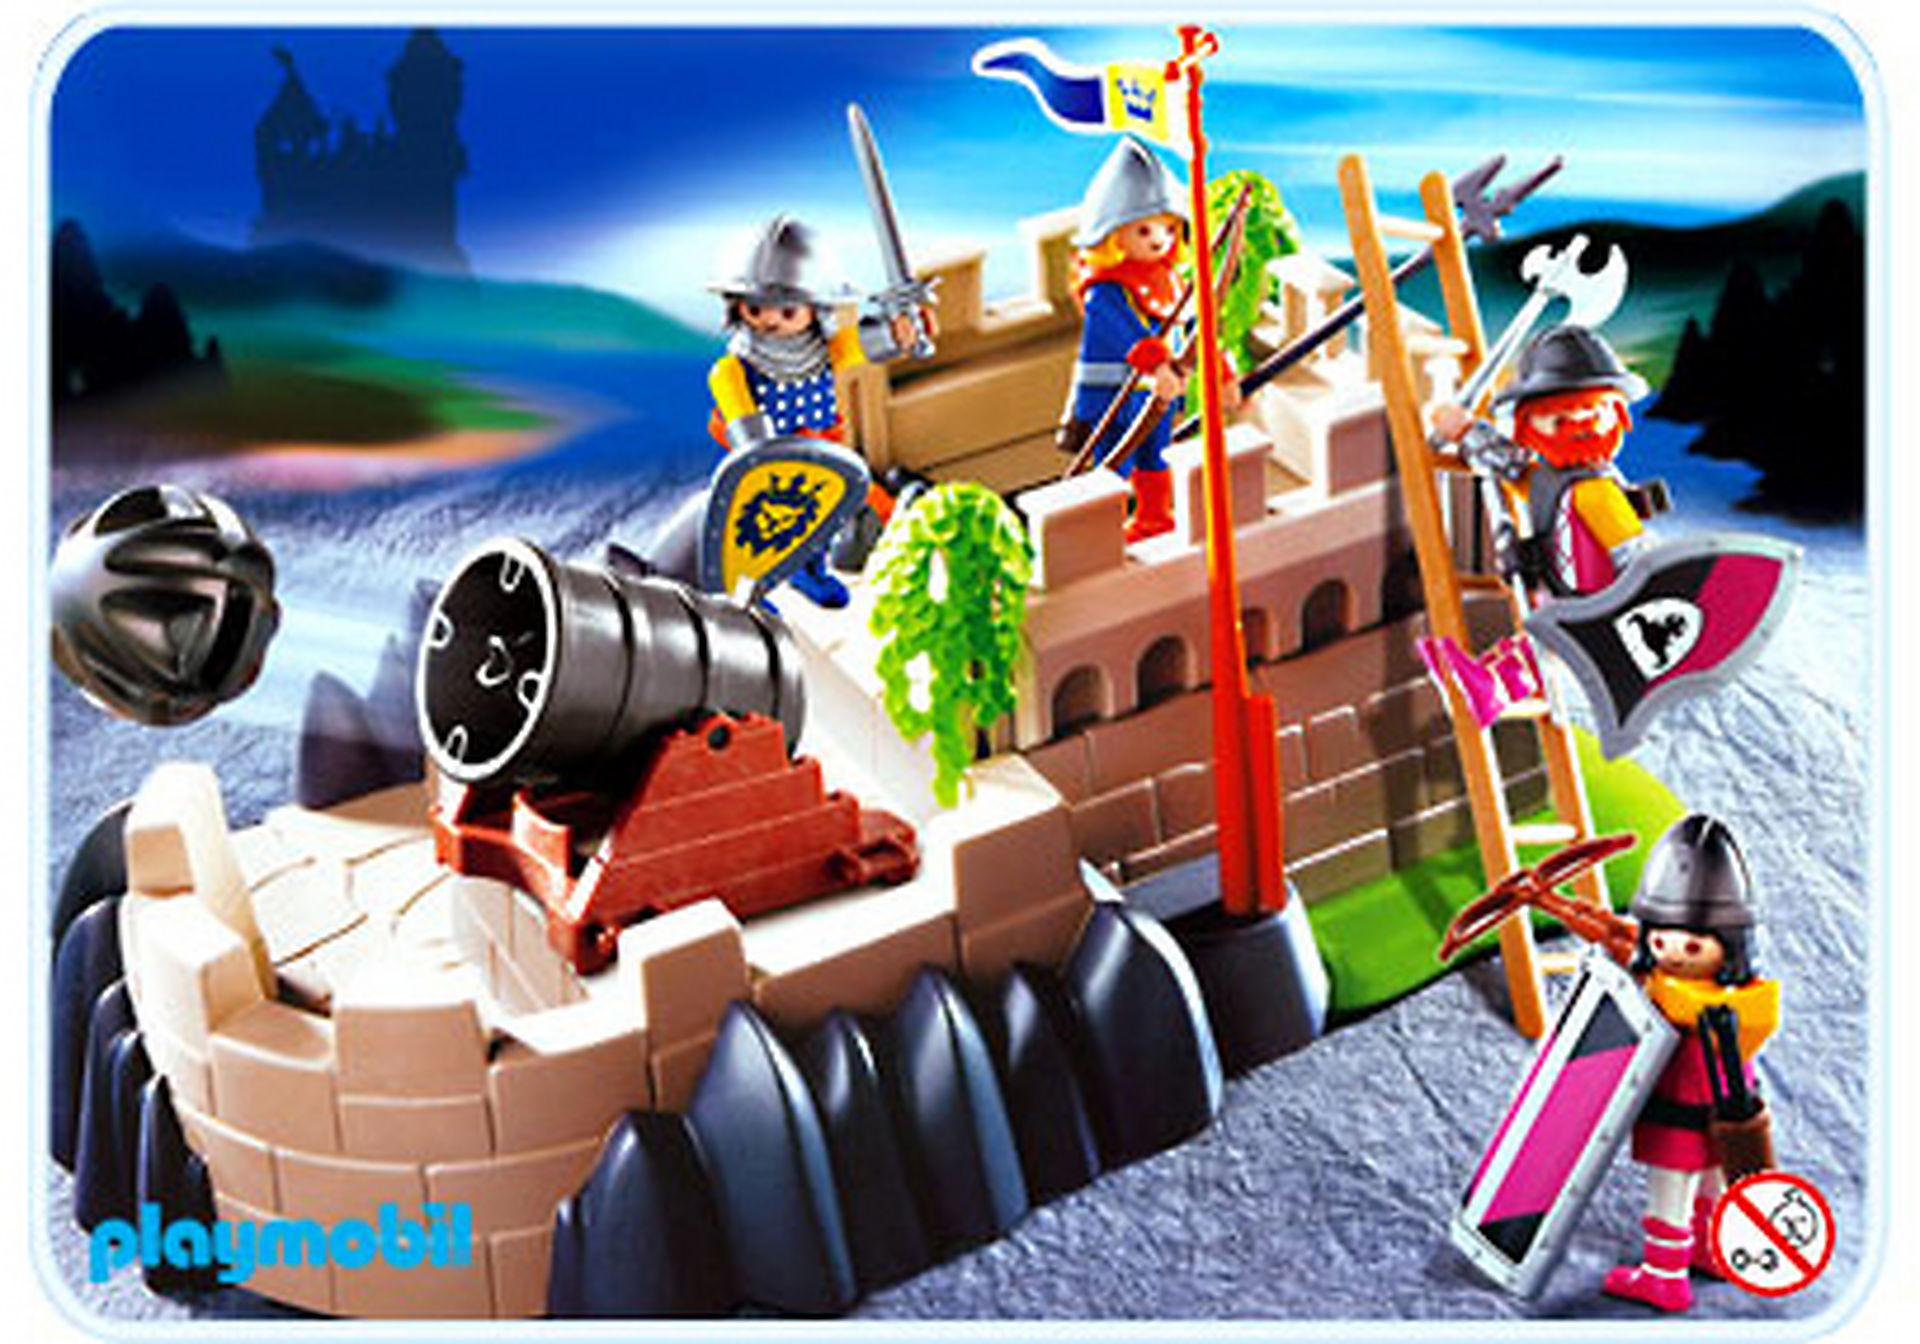 http://media.playmobil.com/i/playmobil/4133-A_product_detail/Superset chevaliers / tour de défense